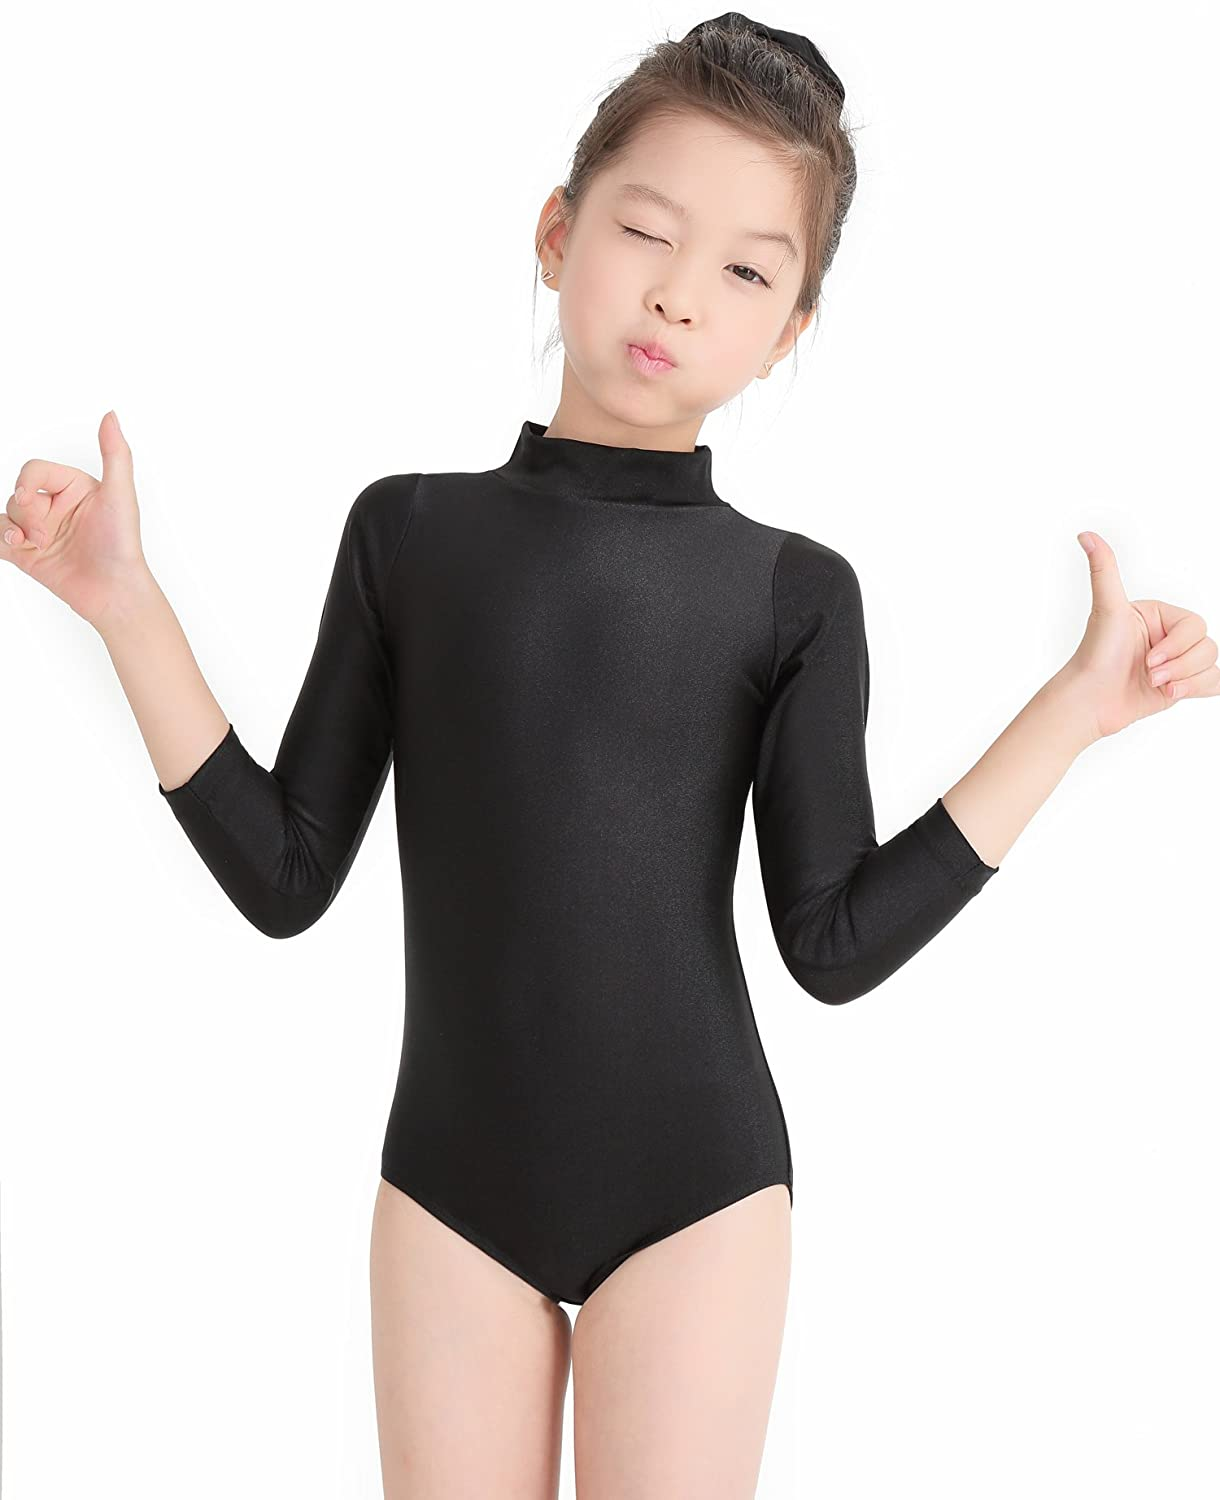 d605c4ee574c7 Amazon.com: Speerise Toddler Girls Long Sleeve Ballet Dance Leotard for Kids  and Teens: Clothing